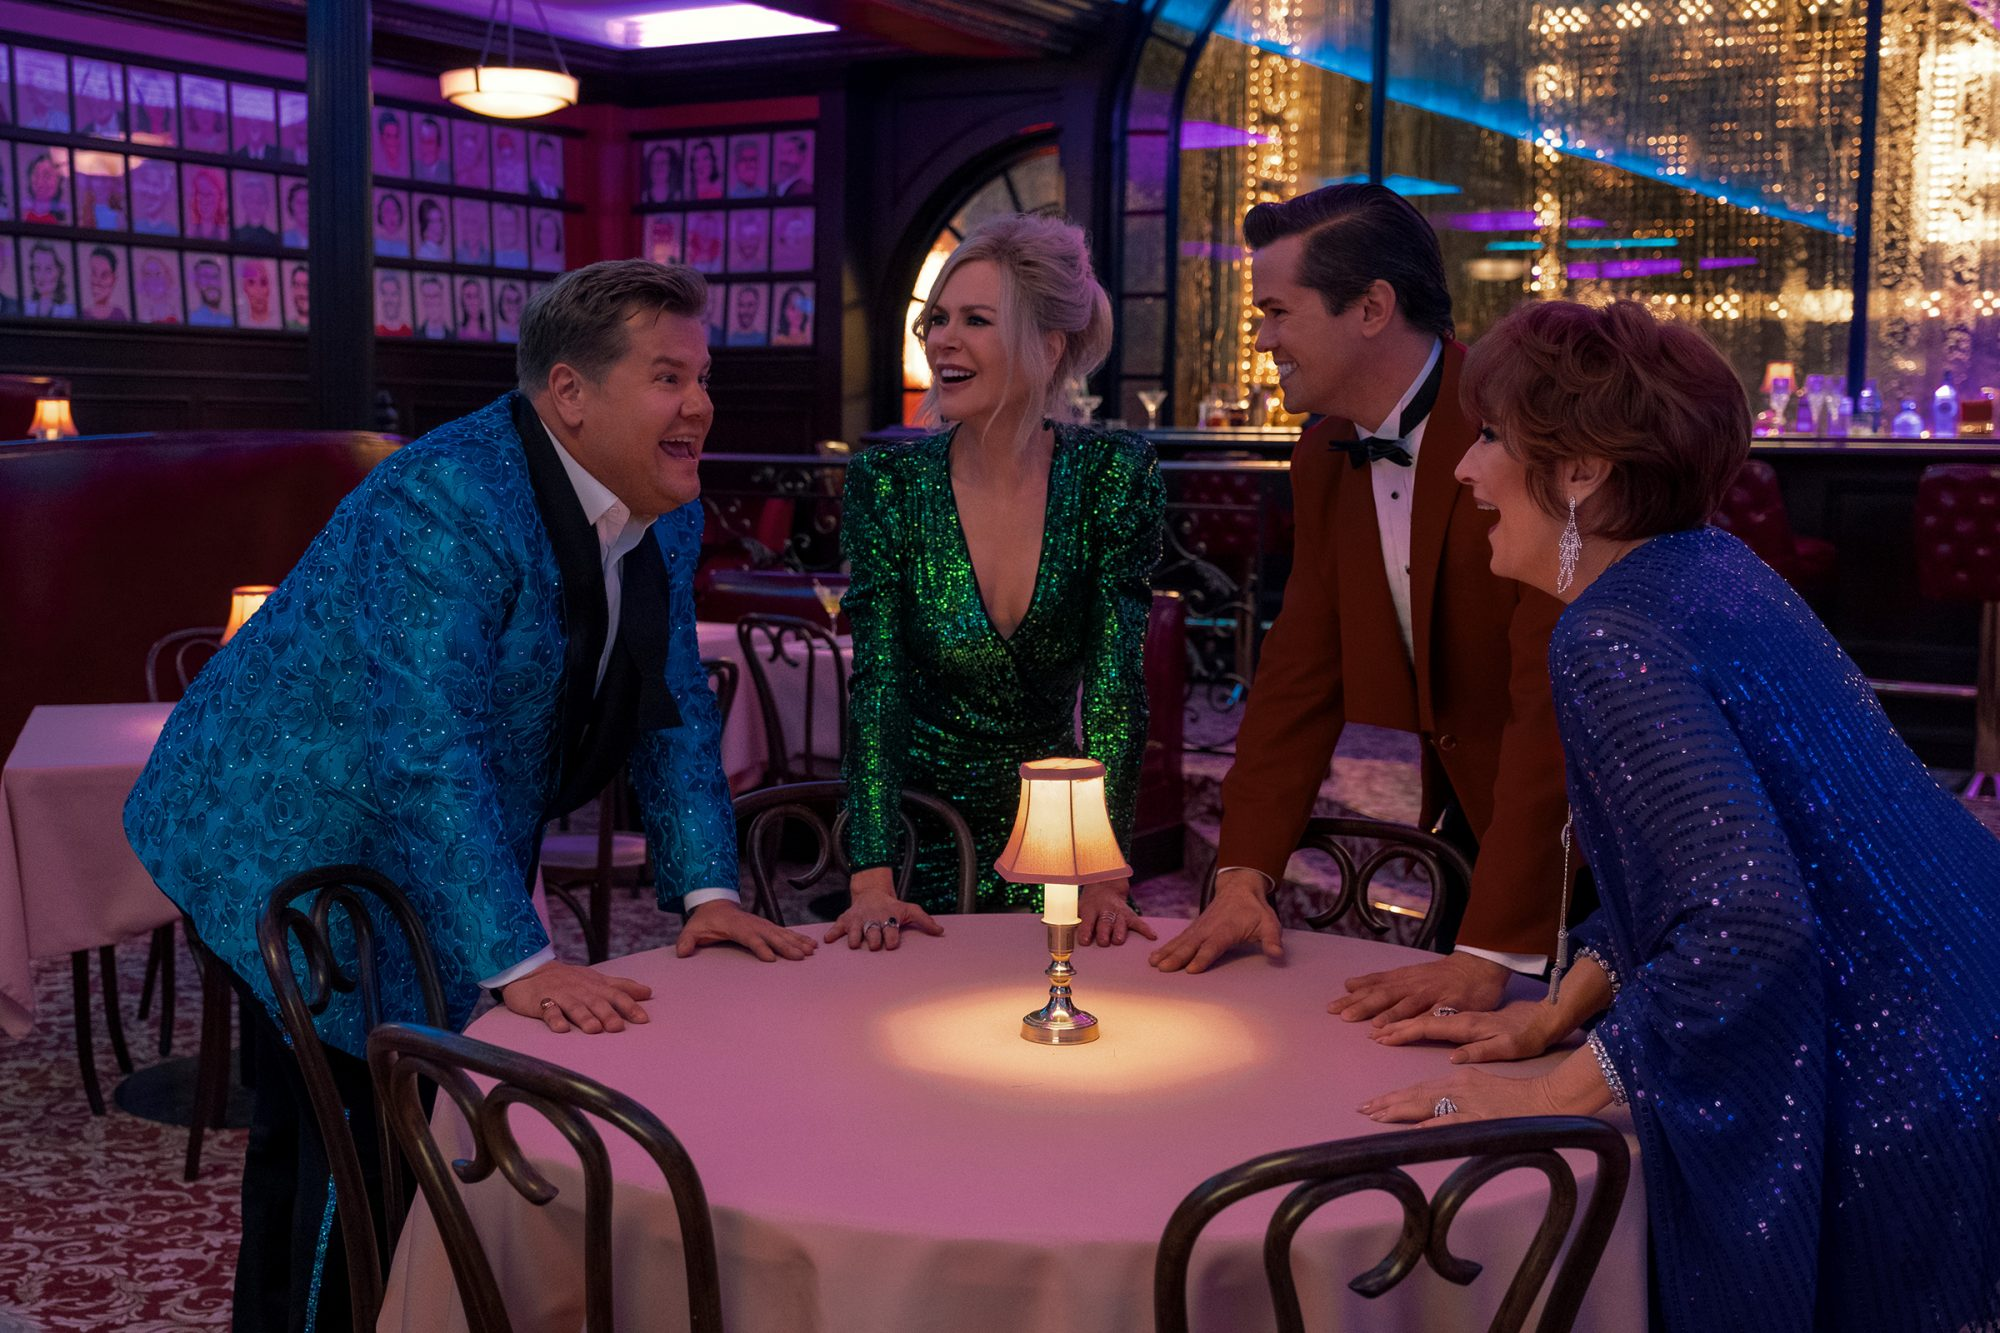 THE PROM (L to R) JAMES CORDEN as BARRY GLICKMAN, NICOLE KIDMAN as ANGIE DICKINSON, ANDREW RANNELLS as TRENT OLIVER, MERYL STREEP as DEE DEE ALLEN in THE PROM